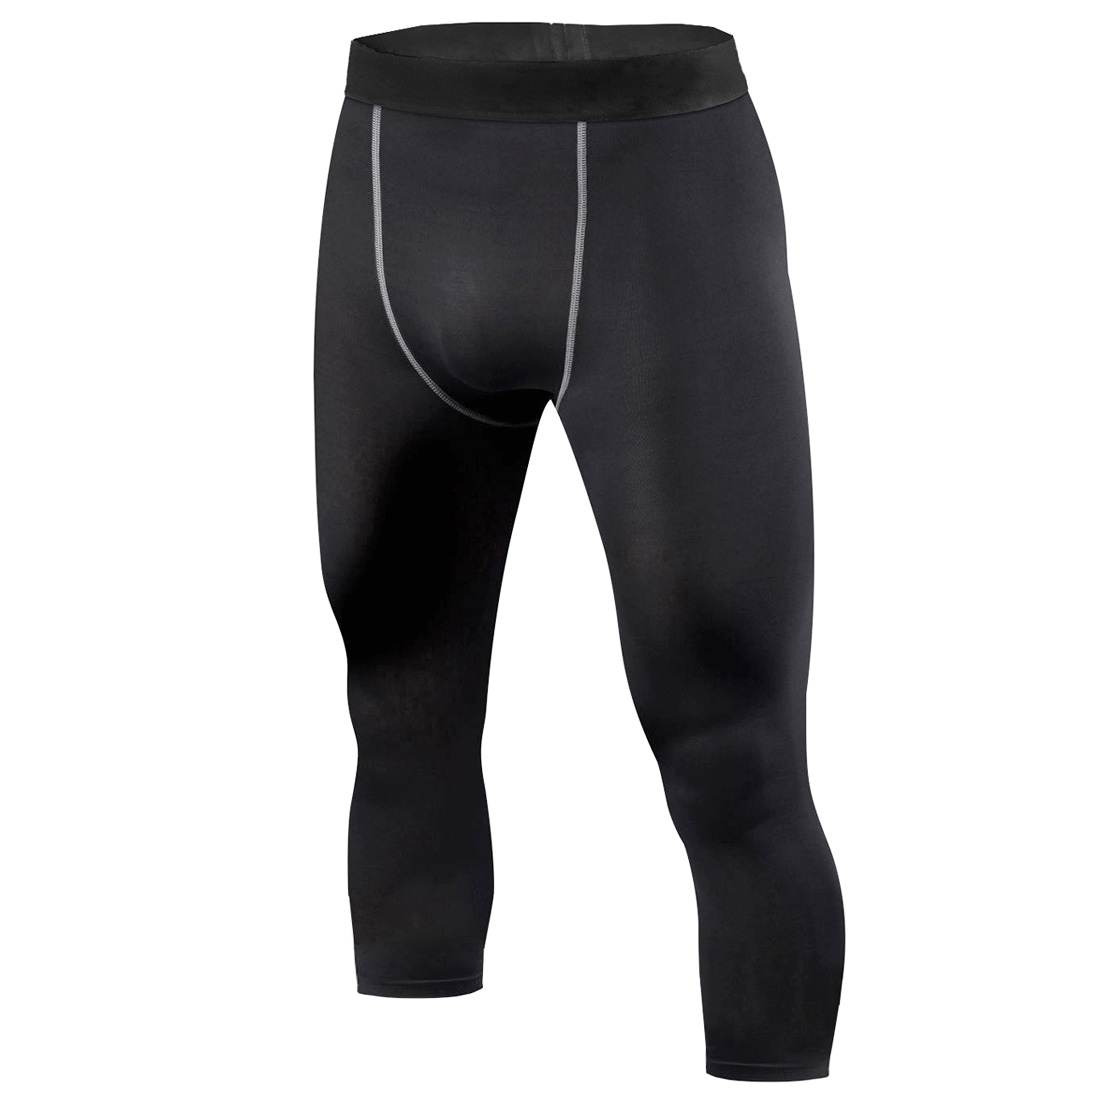 Mens-Compression-Shirt-Shorts-Pants-Sport-Under-Base-